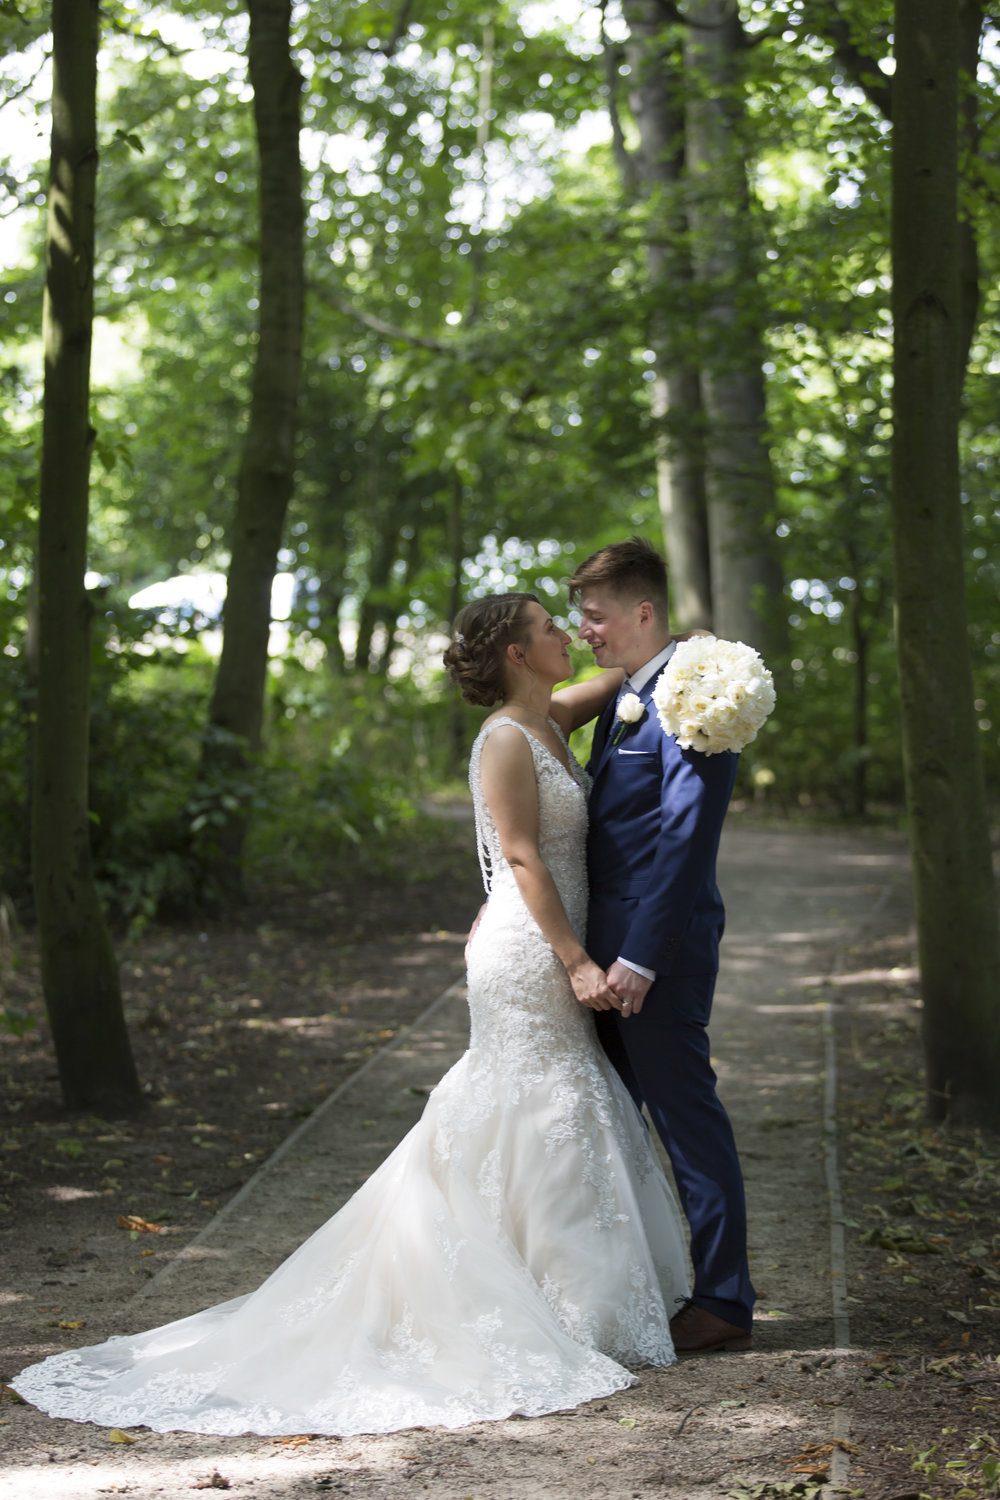 larafrostphotography_cusworthhall_doncaster_southyorkshire_karlandlucy_weddingphotography_photographer_yorkshire_bride_groom-45.jpg